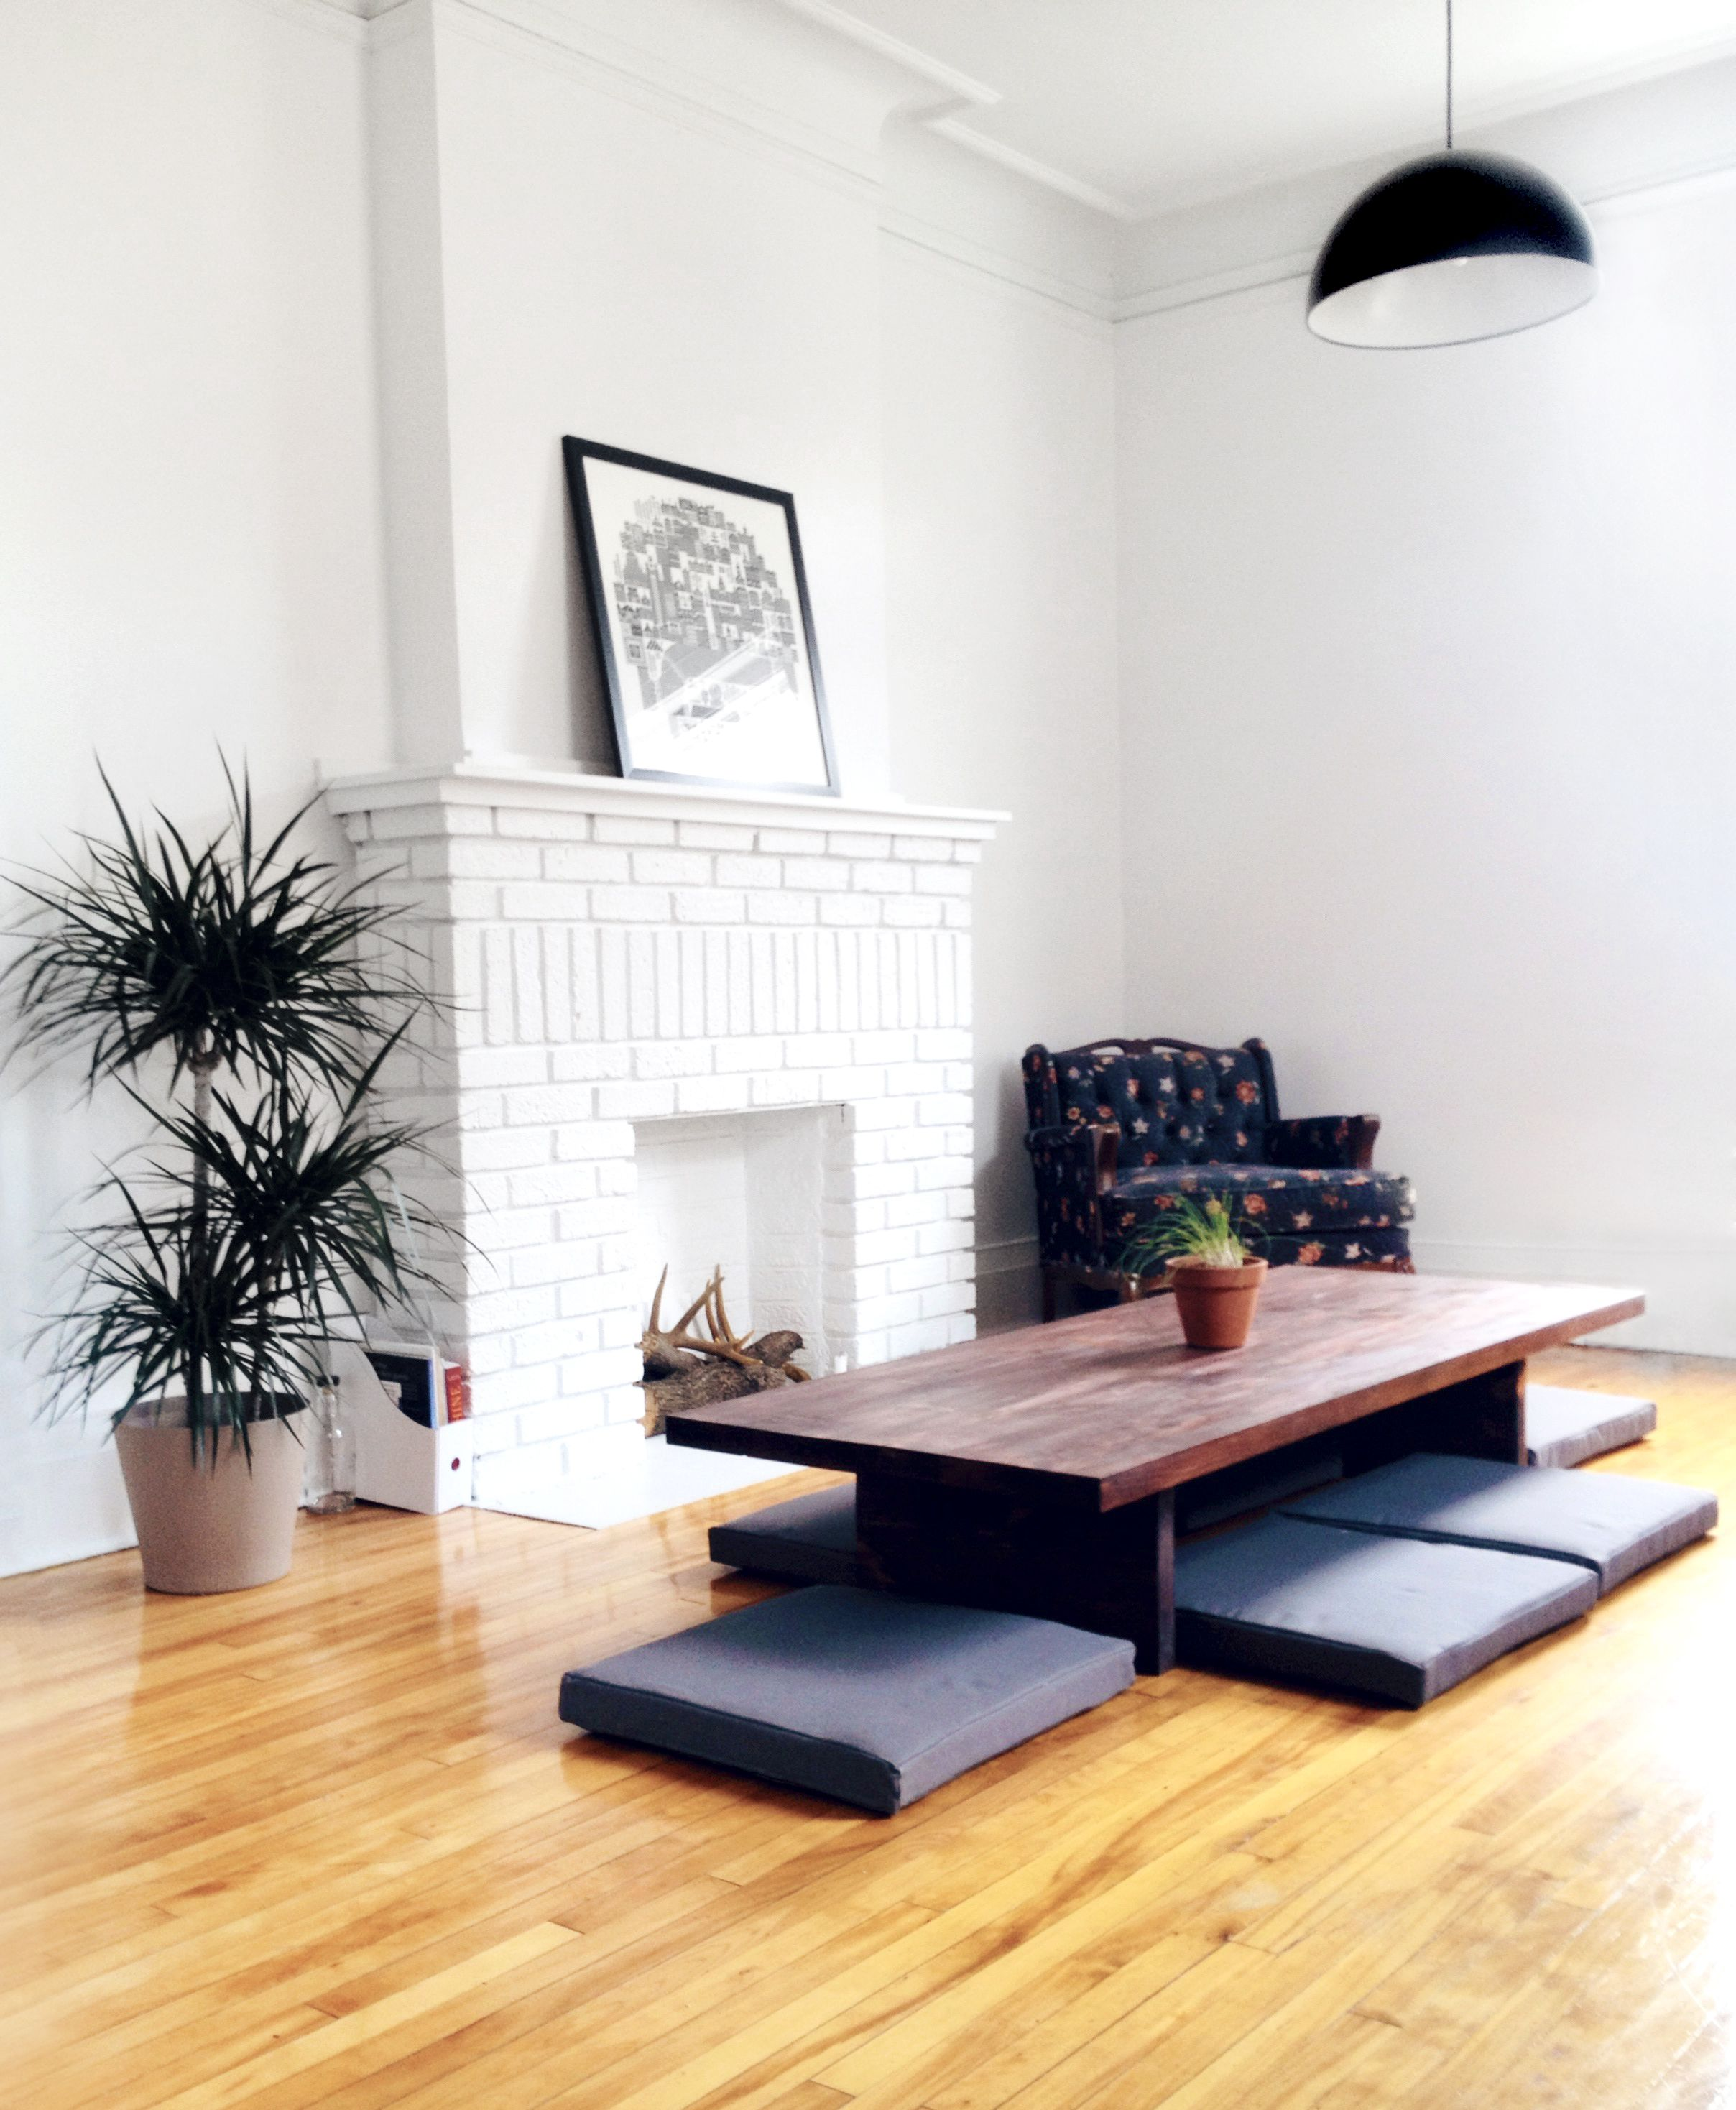 japanese living room set chocolate brown and red diy low dining table cushions inspired 低ダイニング 低ダイニングテーブルやクッション